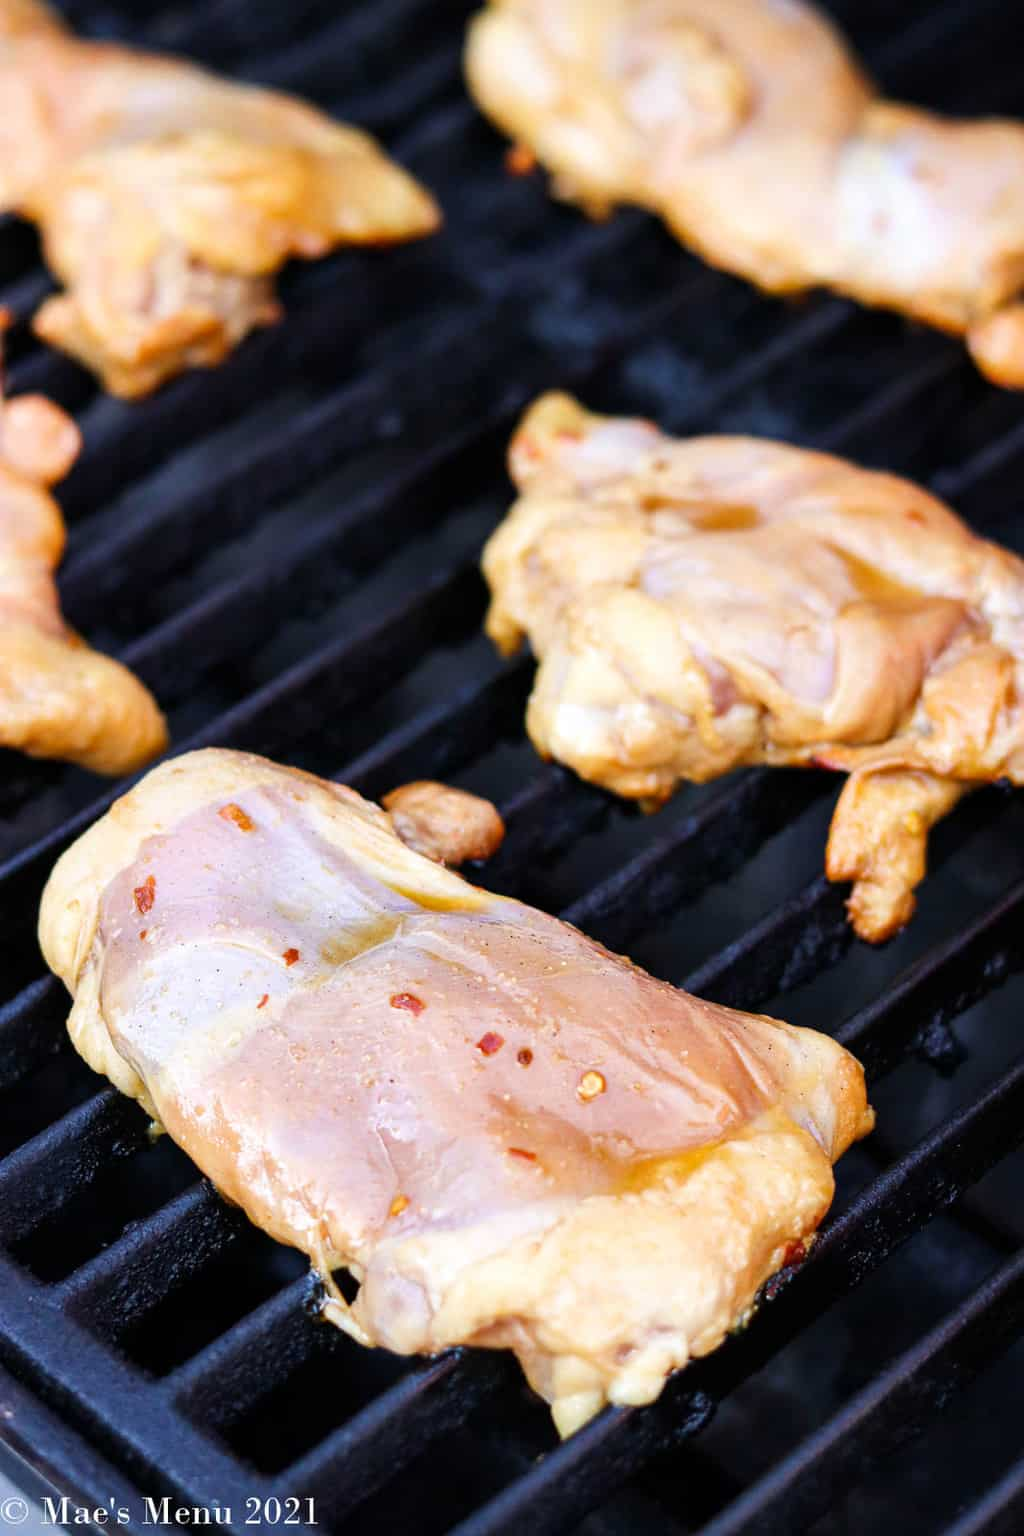 The chicken on the grill